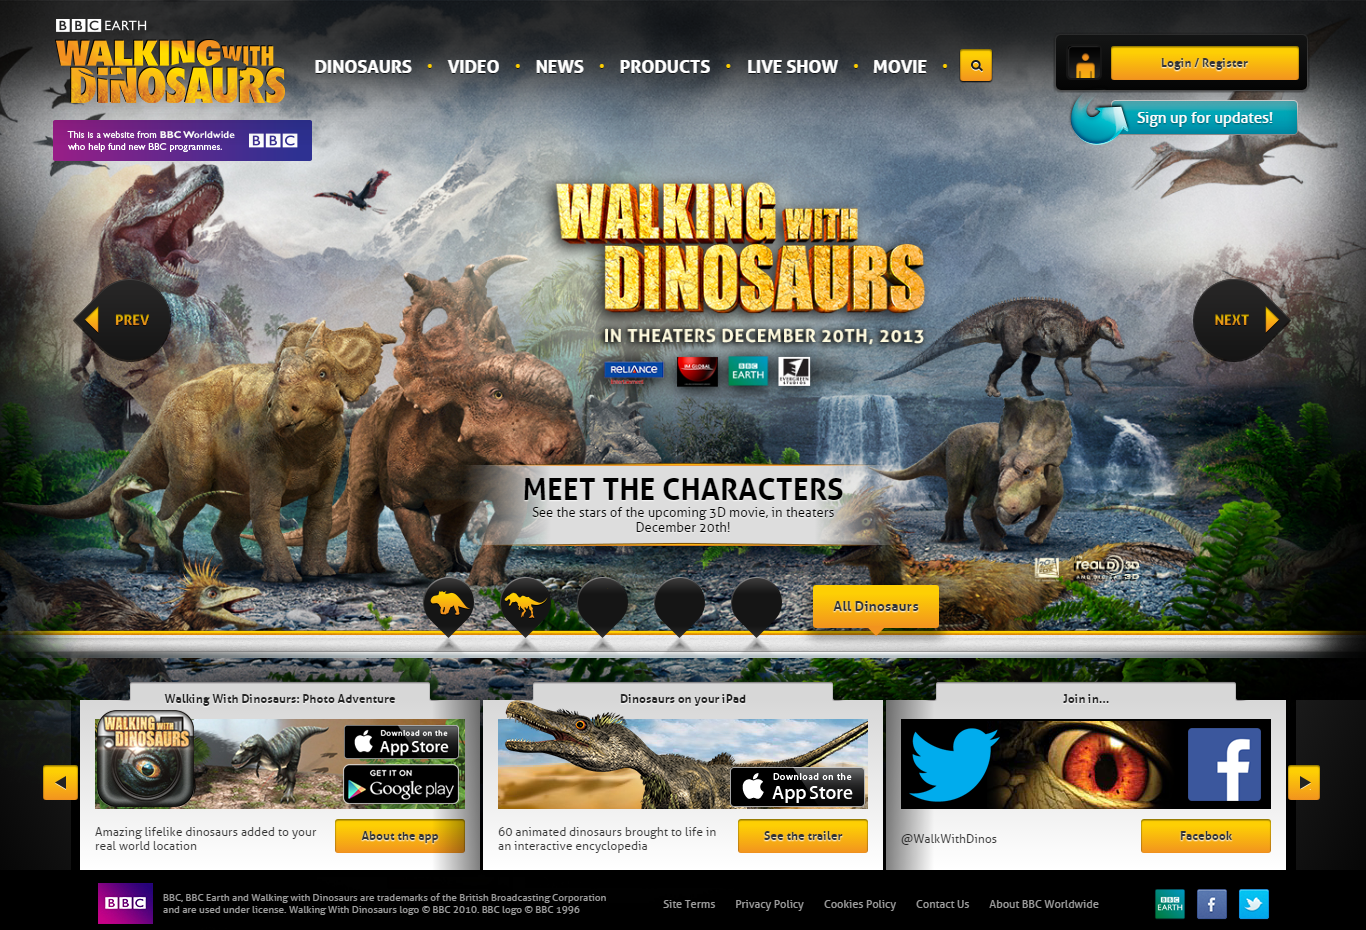 Walking with Dinosaurs website screenshot